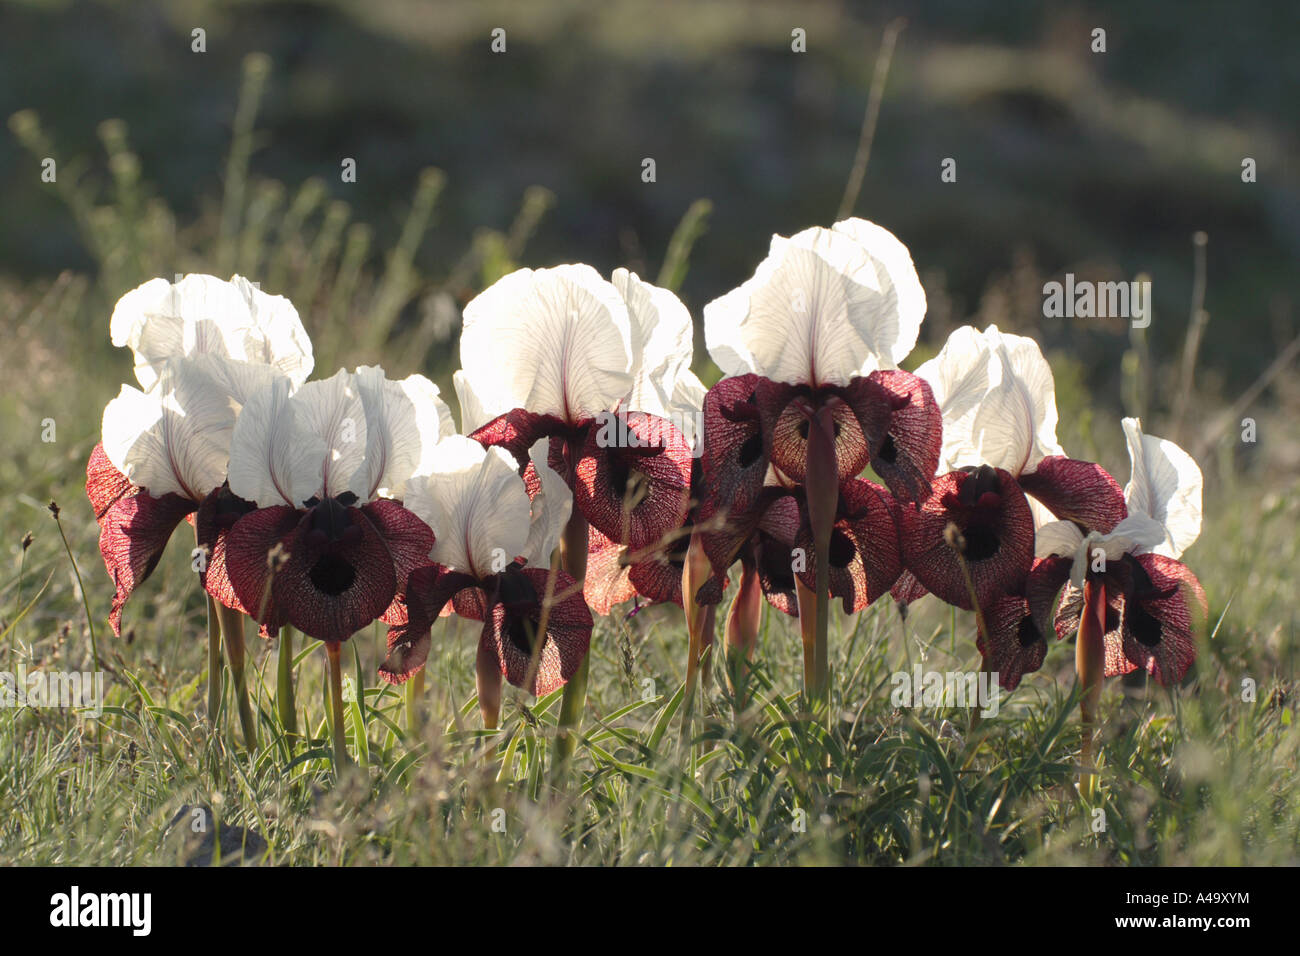 bearded iris (Iris iberica elegantissima), group of blooming plants in back light, Turkey, East Anatolia, Ararat, - Stock Image